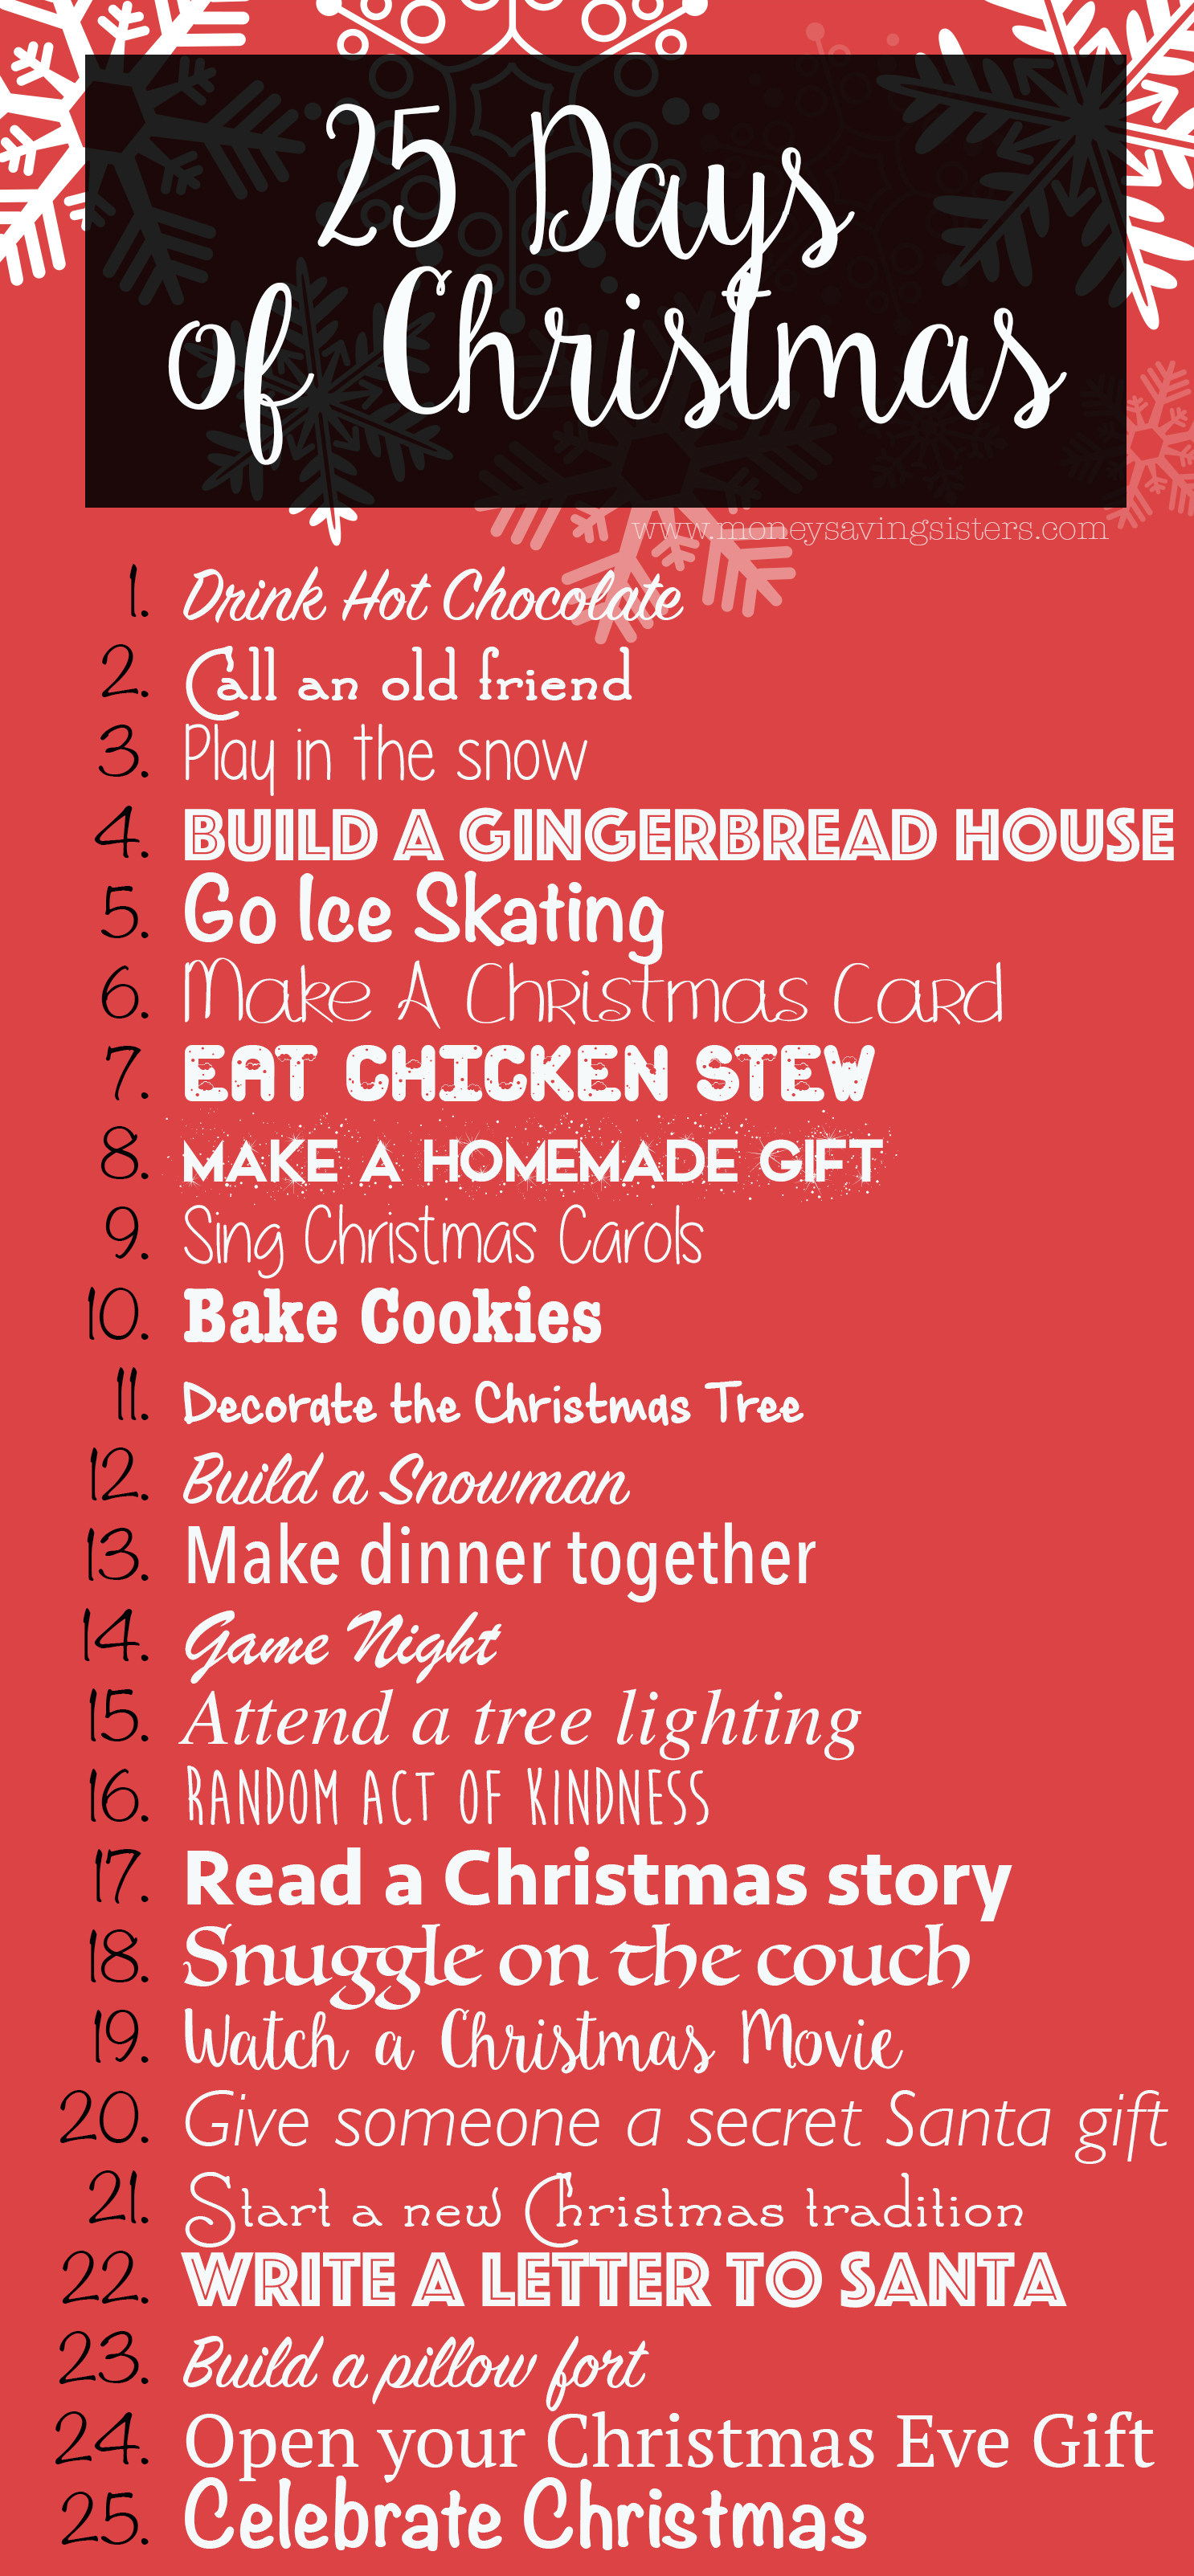 25 Days Of Christmas Activities For The Entire Family